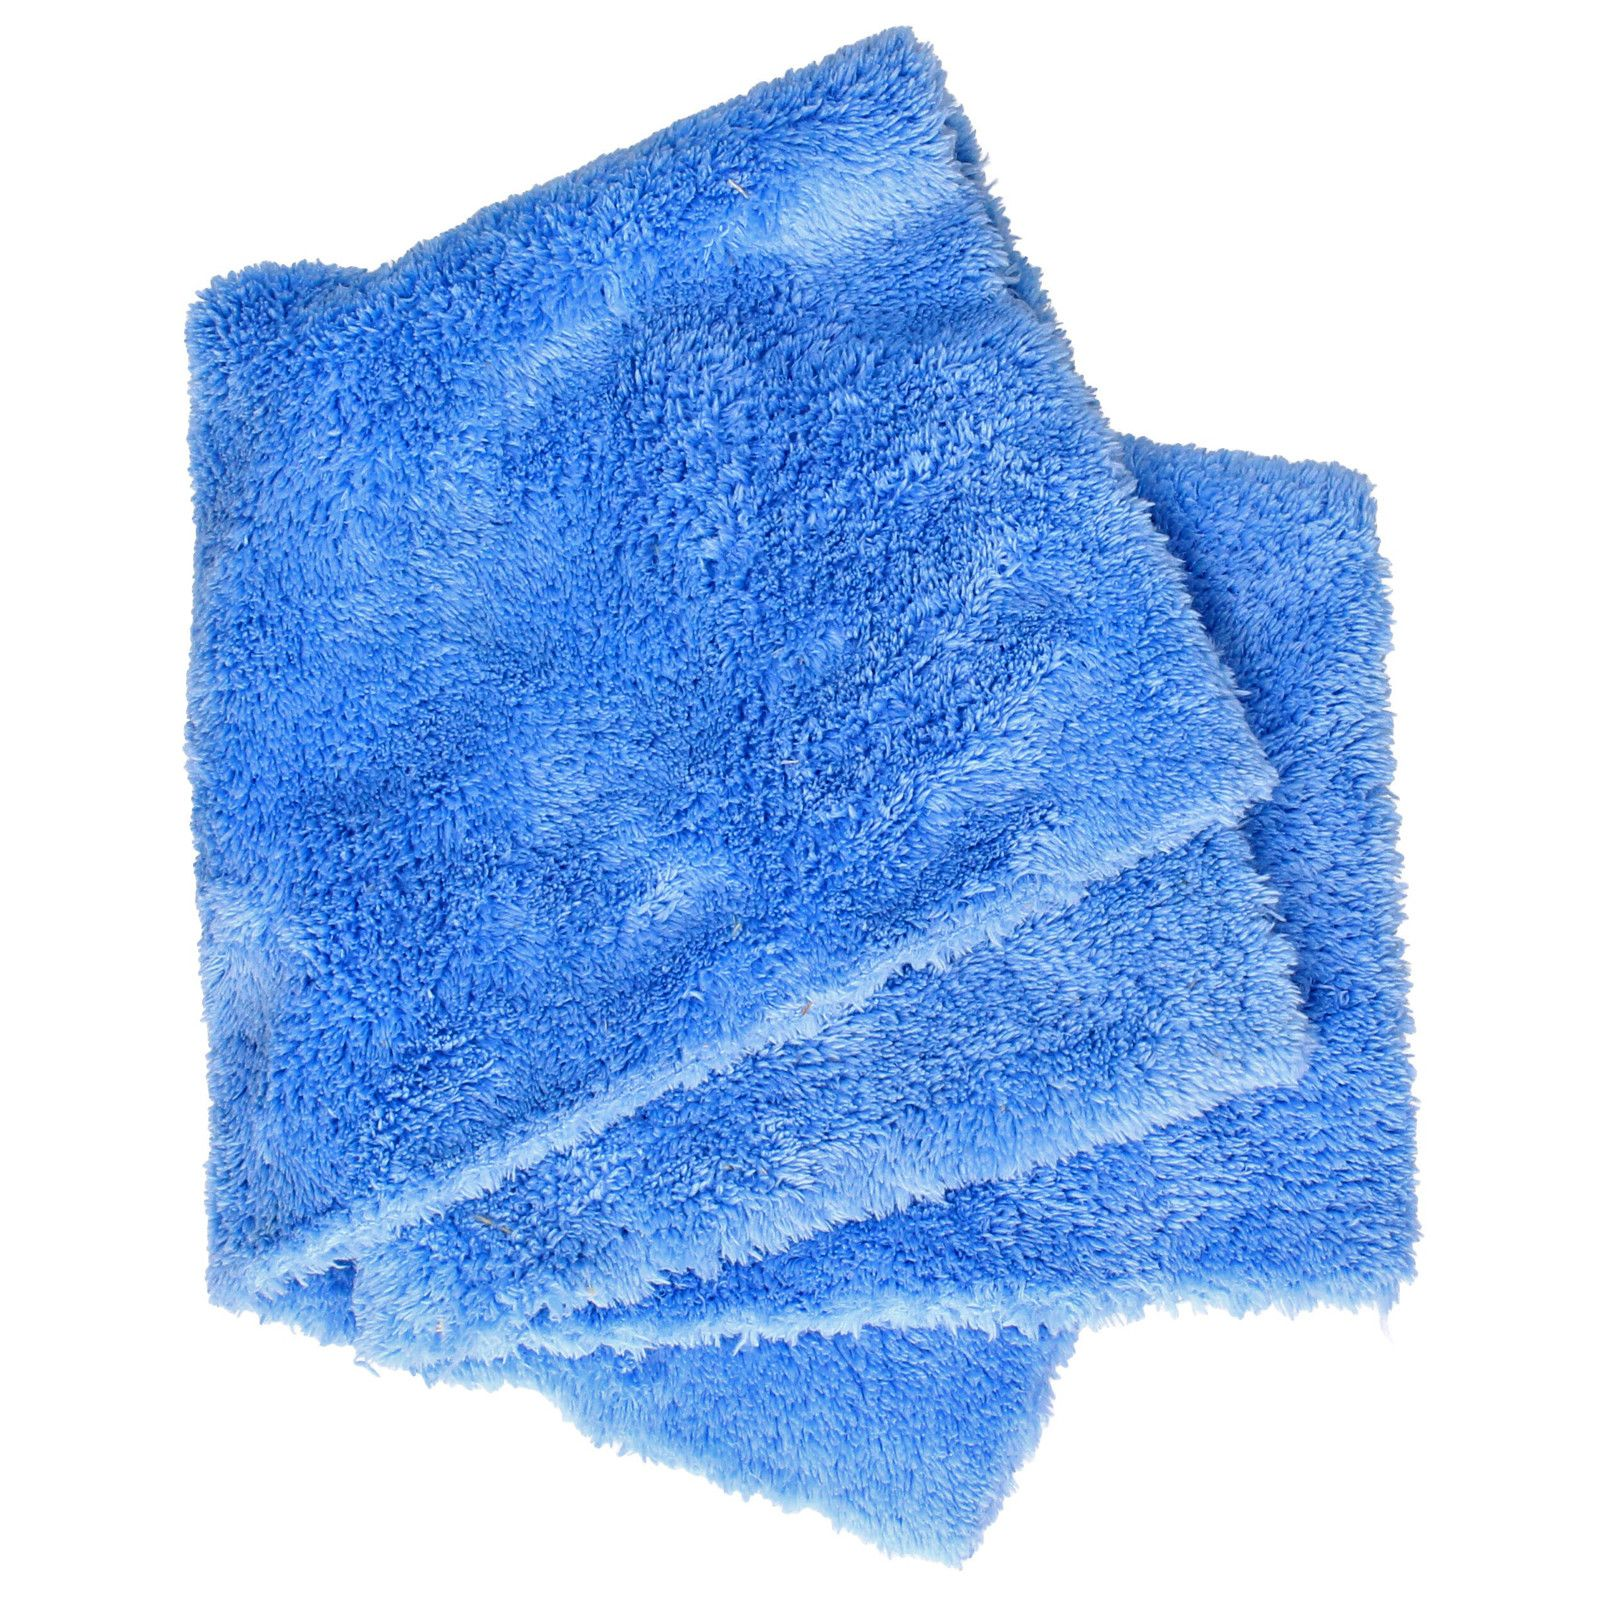 Joest - Microfiber Cloth - Soft and Dry 40 x 80 cm | Aquasabi - Aquascaping  Shop